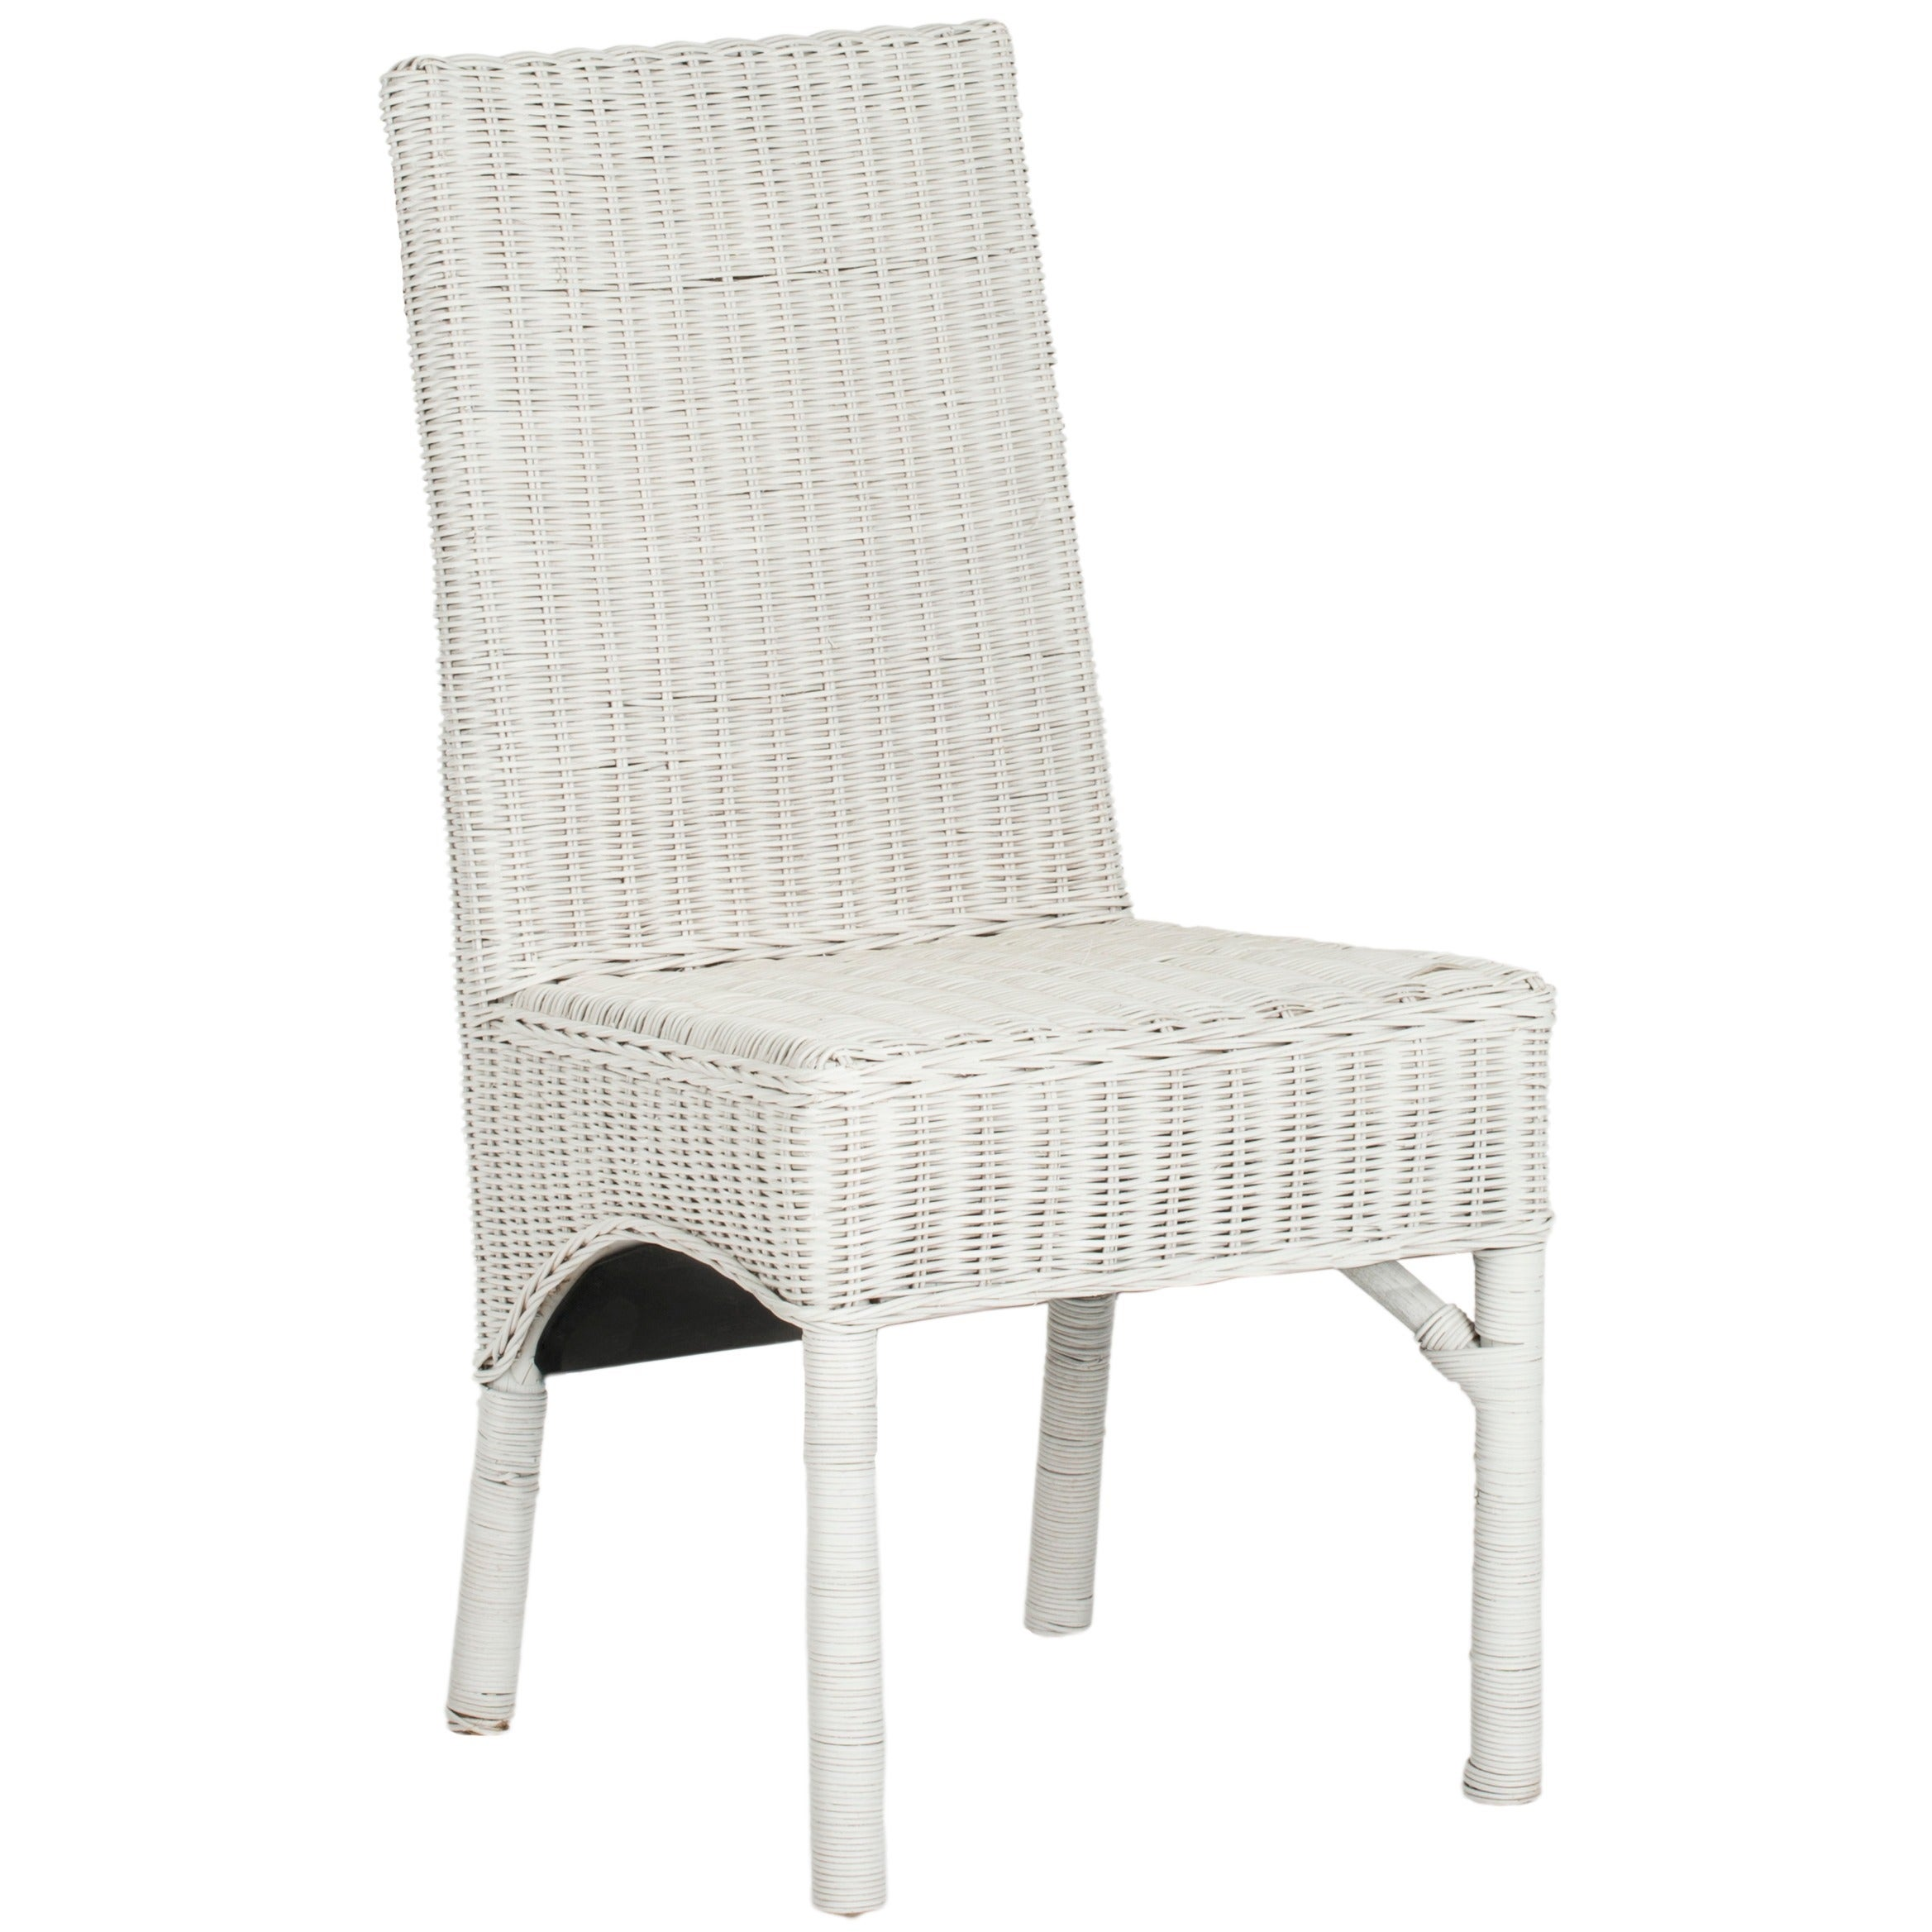 Shop safavieh rural woven dining sommerset white kubu wicker dining chairs set of 2 on sale free shipping today overstock com 7634035